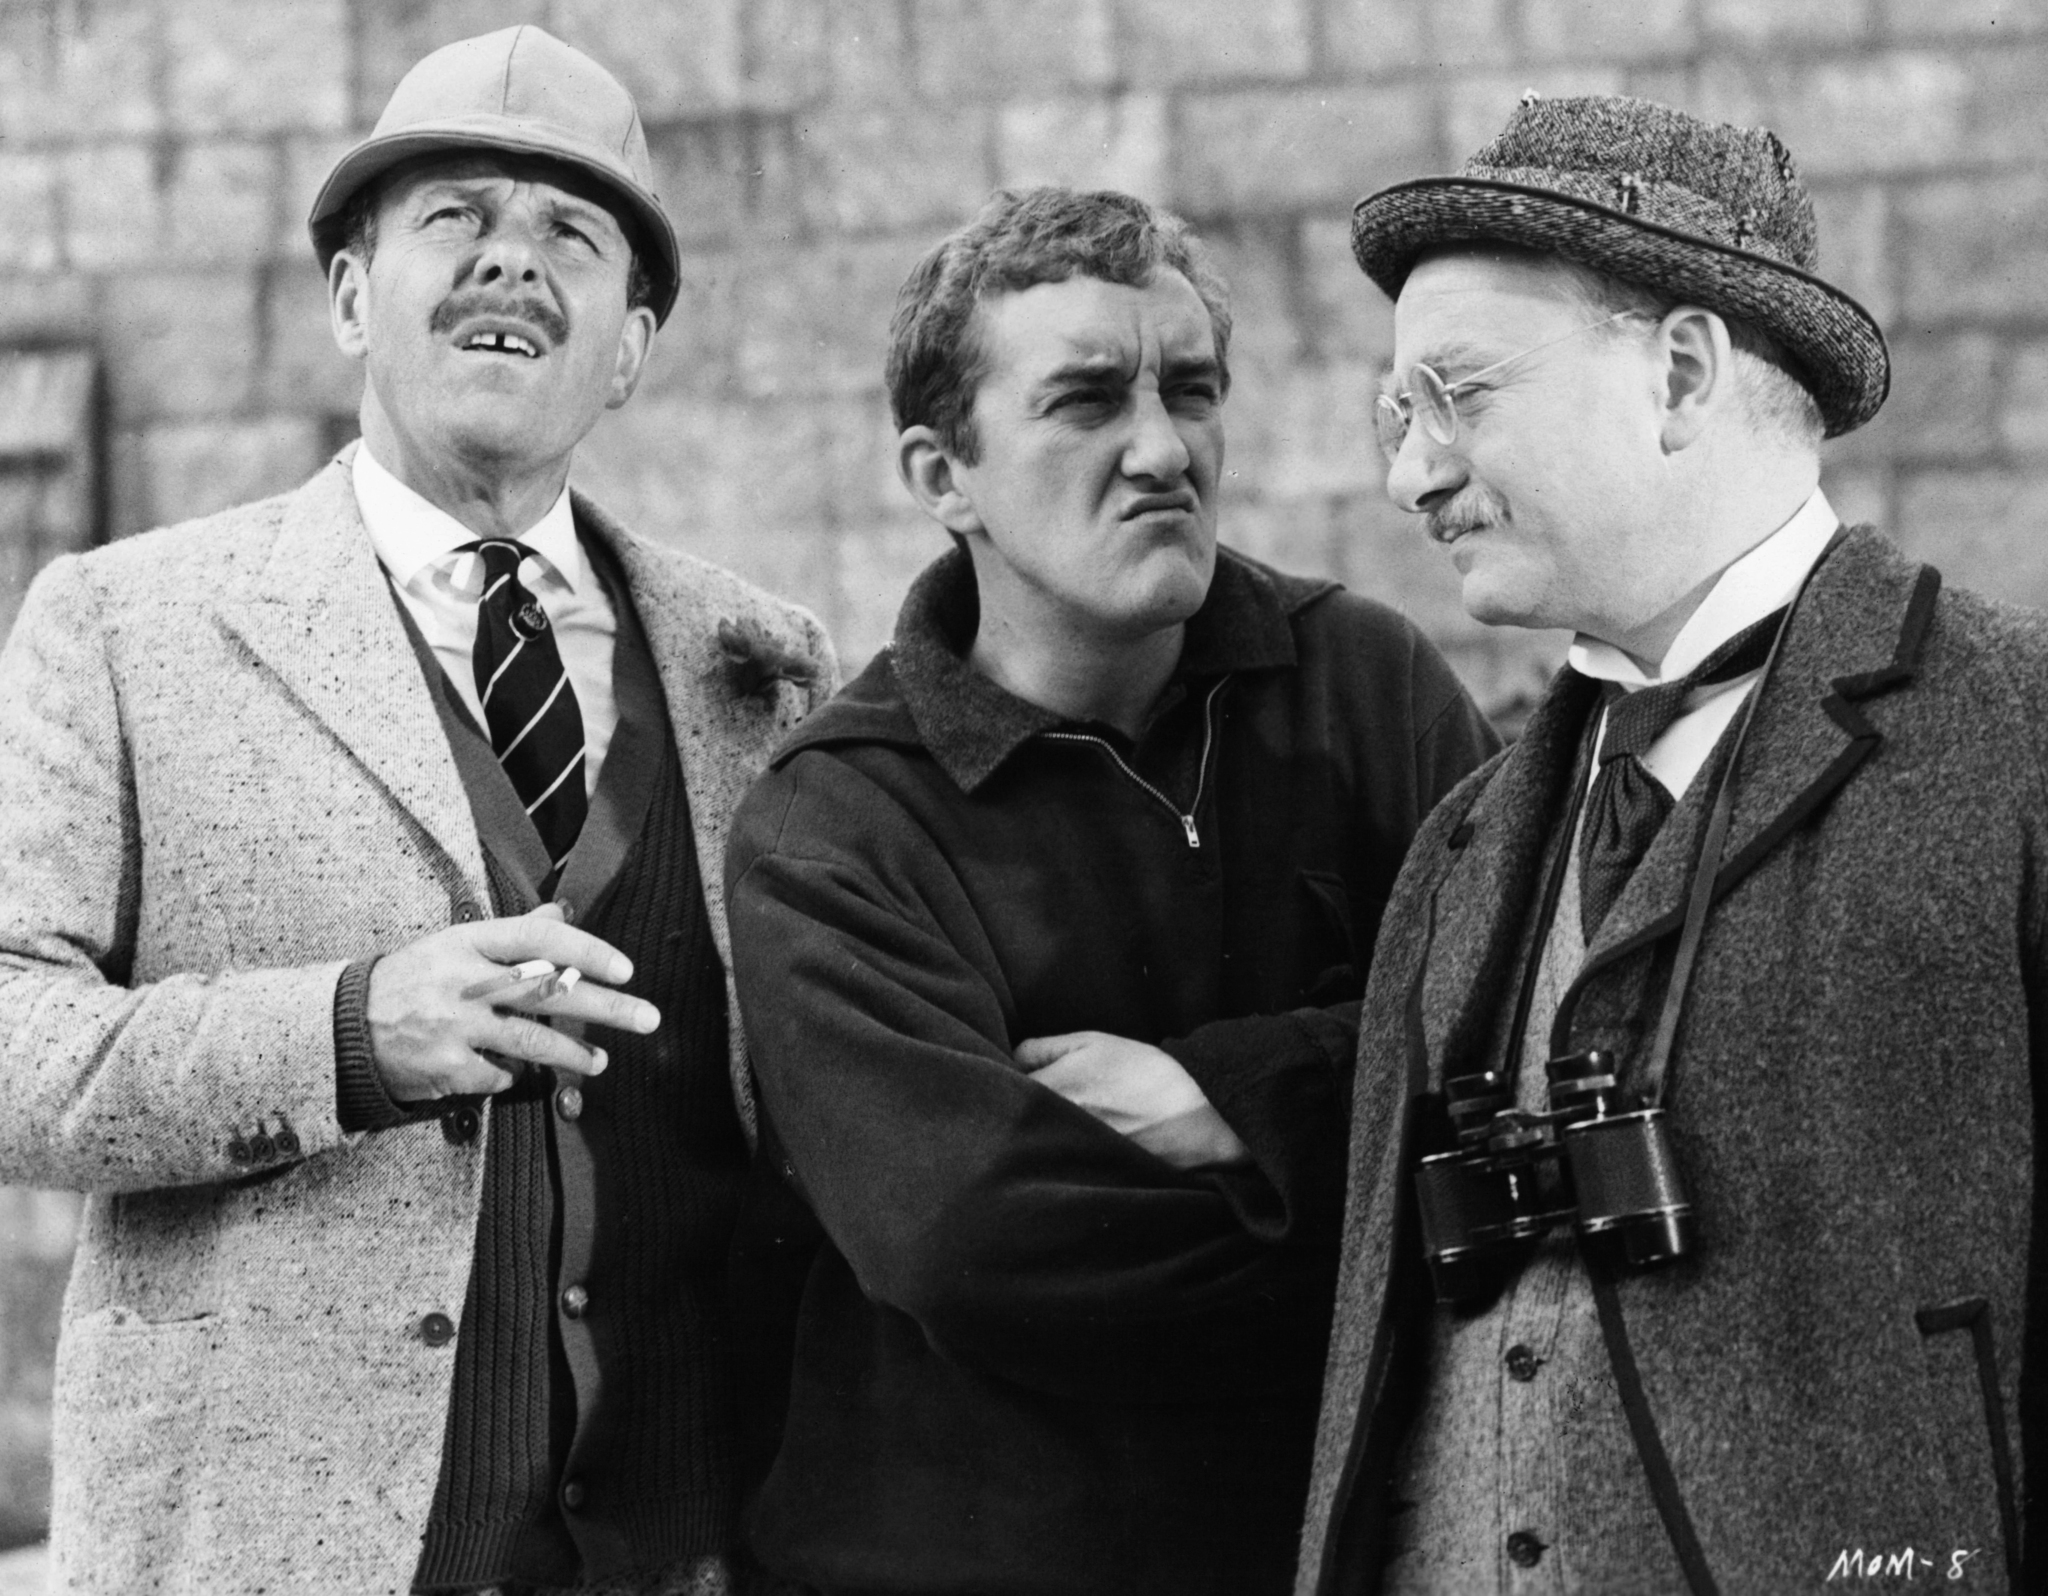 Bernard Cribbins, David Kossoff, and Terry-Thomas at an event for The Mouse on the Moon (1963)